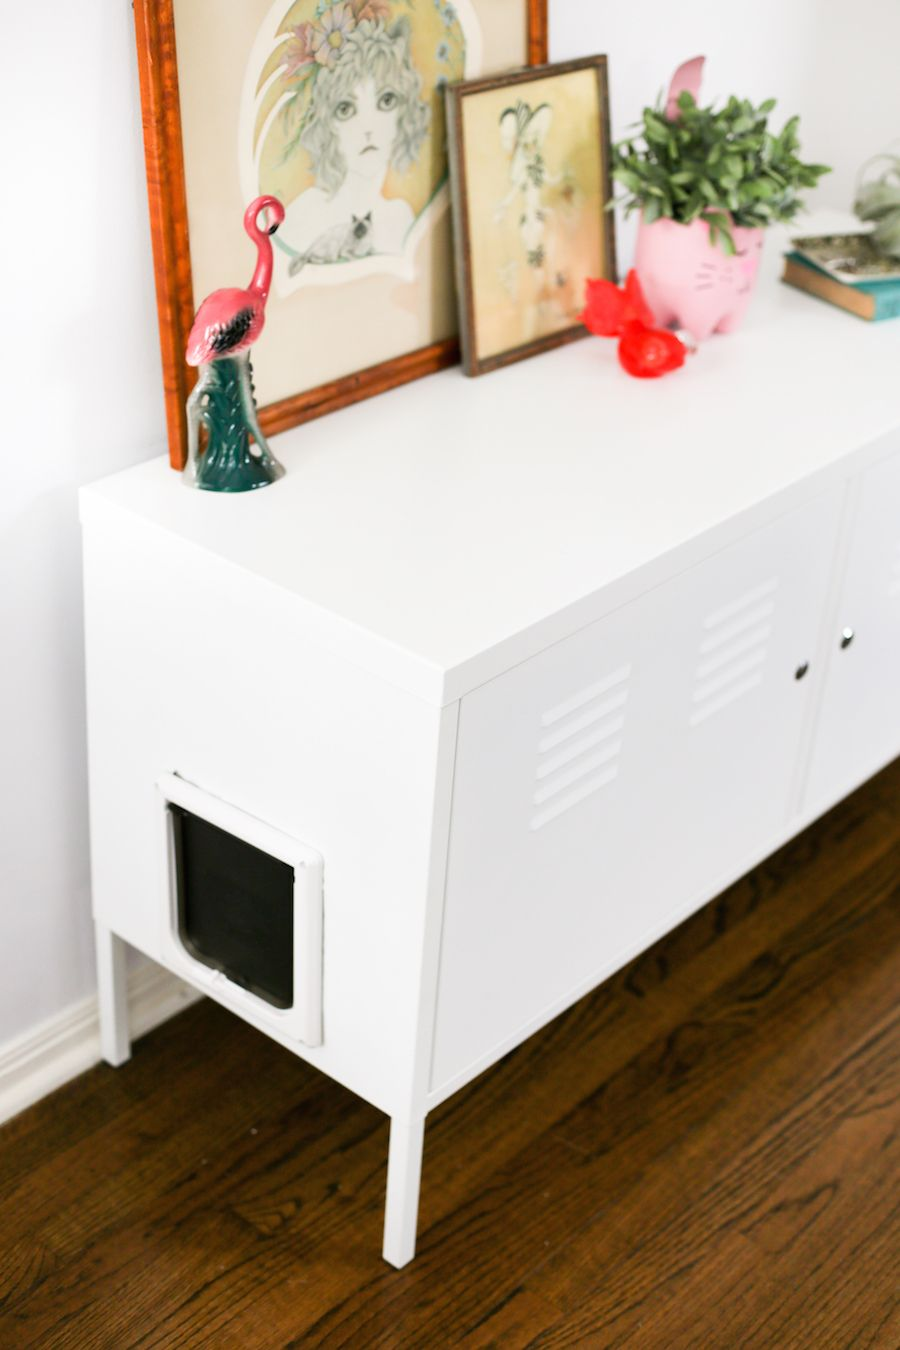 Turn The Ikea PS Cabinet Into A Giant Kitty Litter Box So You Never Have To  Look At Litter Again! // Salty Canary